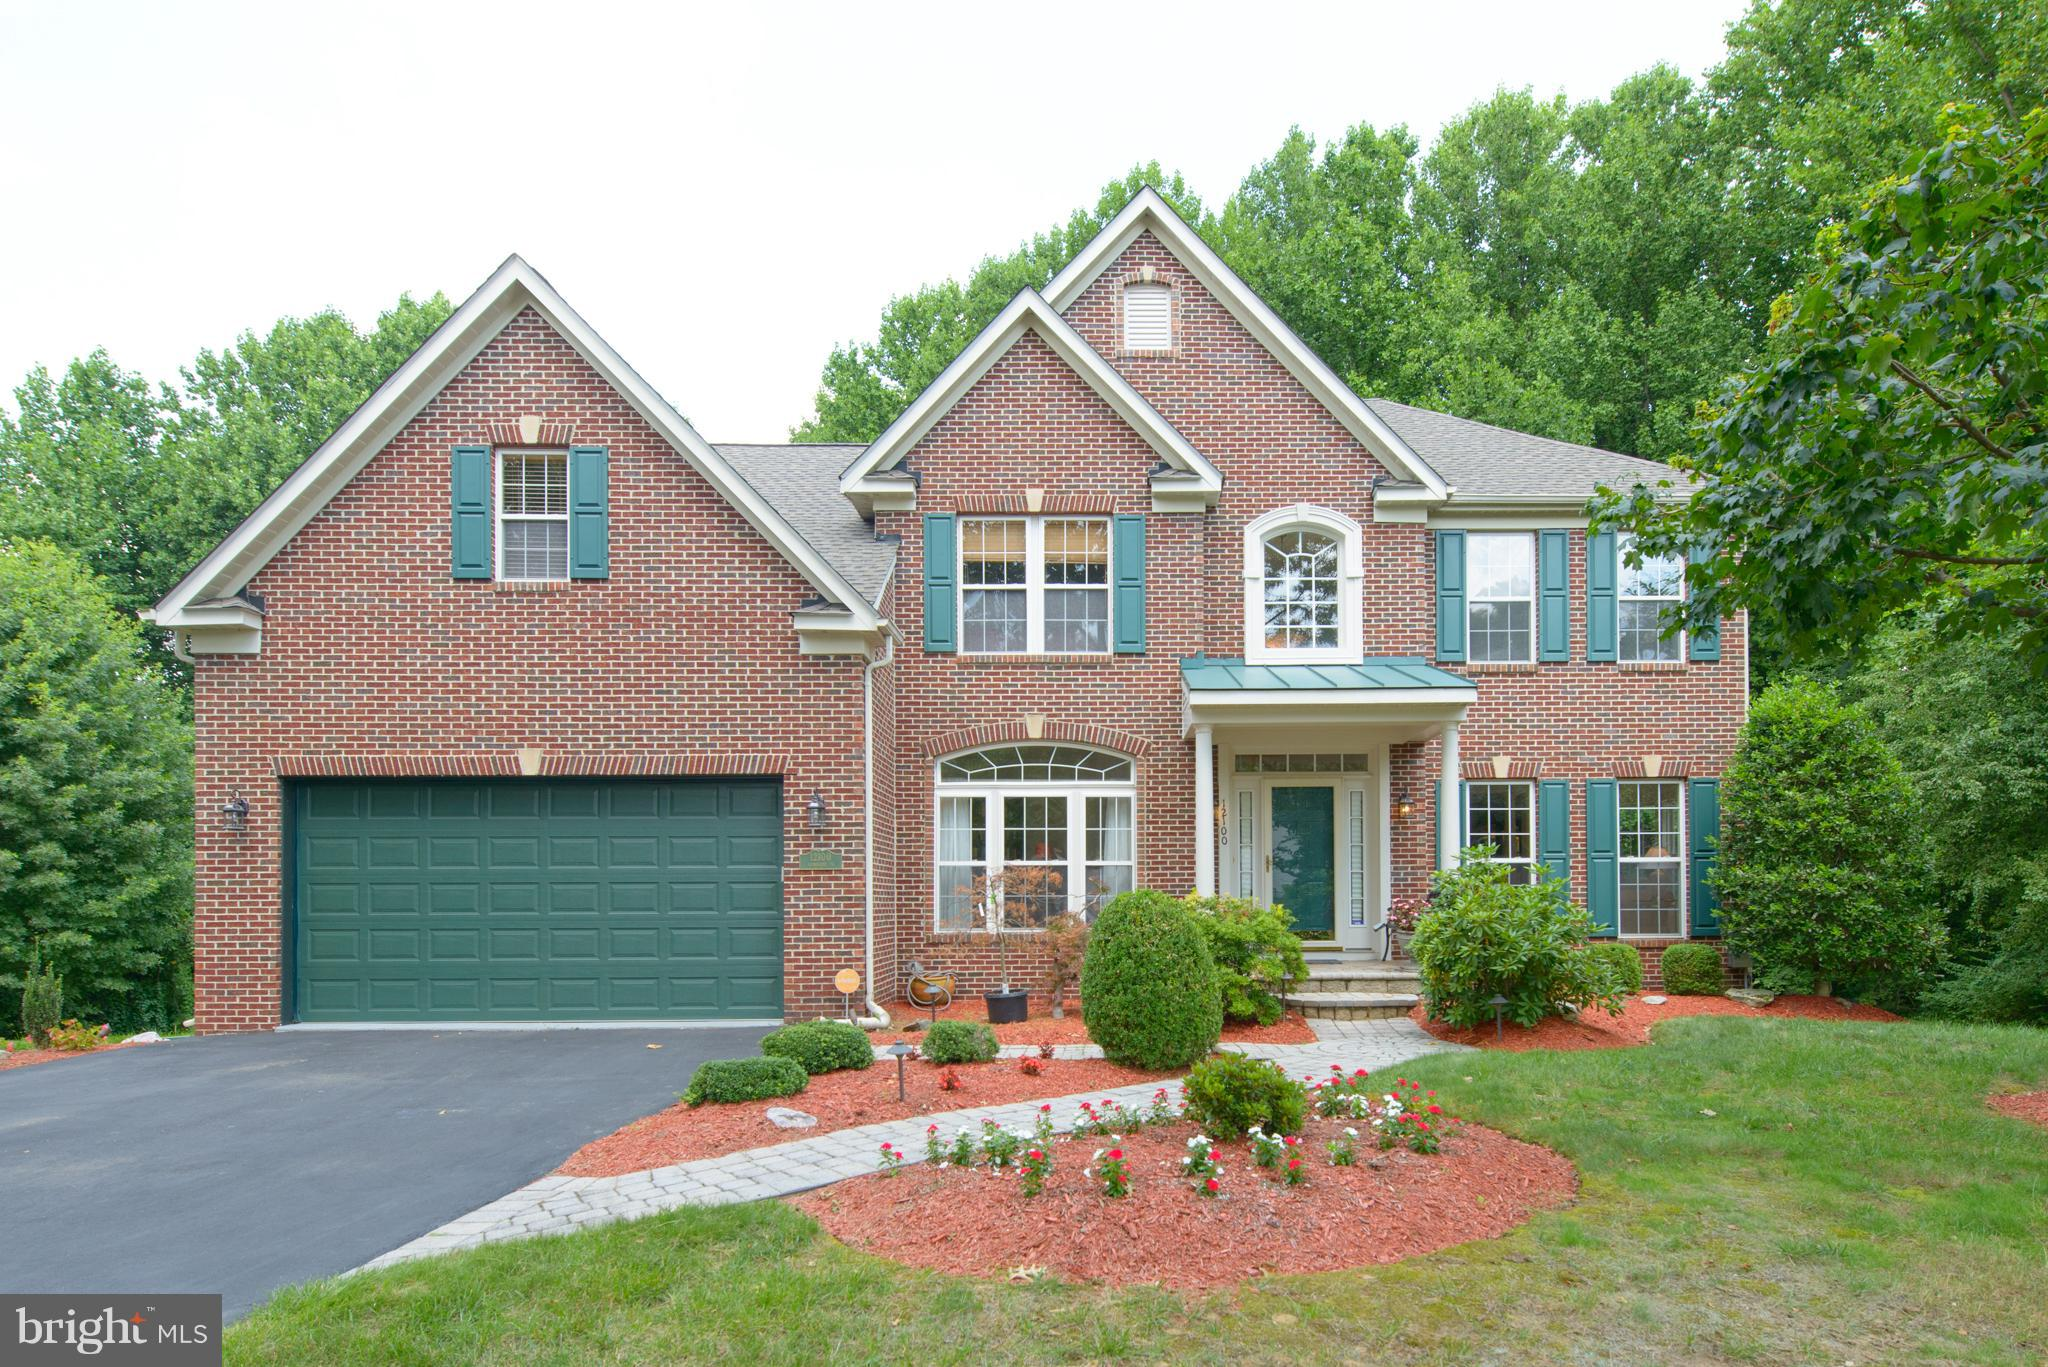 12100 GUINEVERE PLACE, GLENN DALE, MD 20769